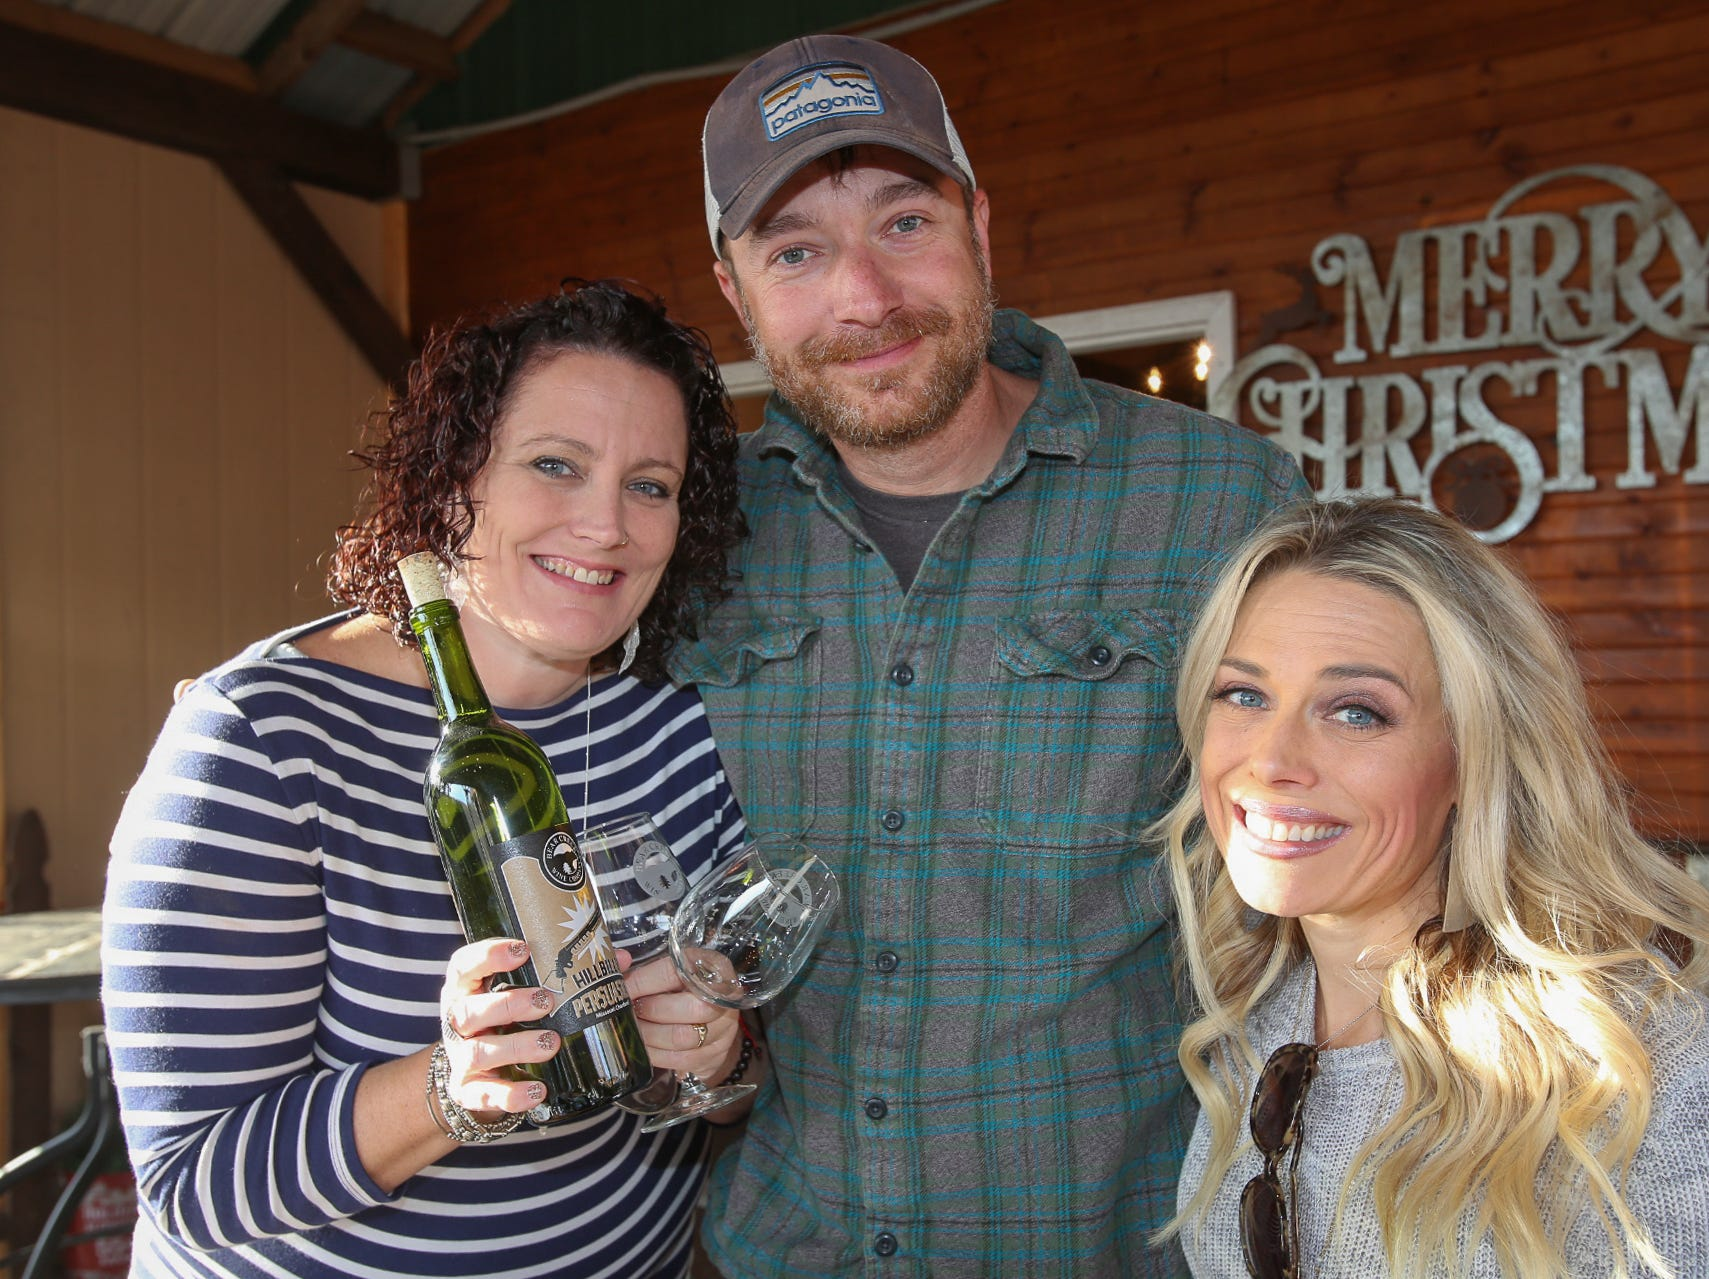 Kelie Zeller and Chad and Jessica Kold